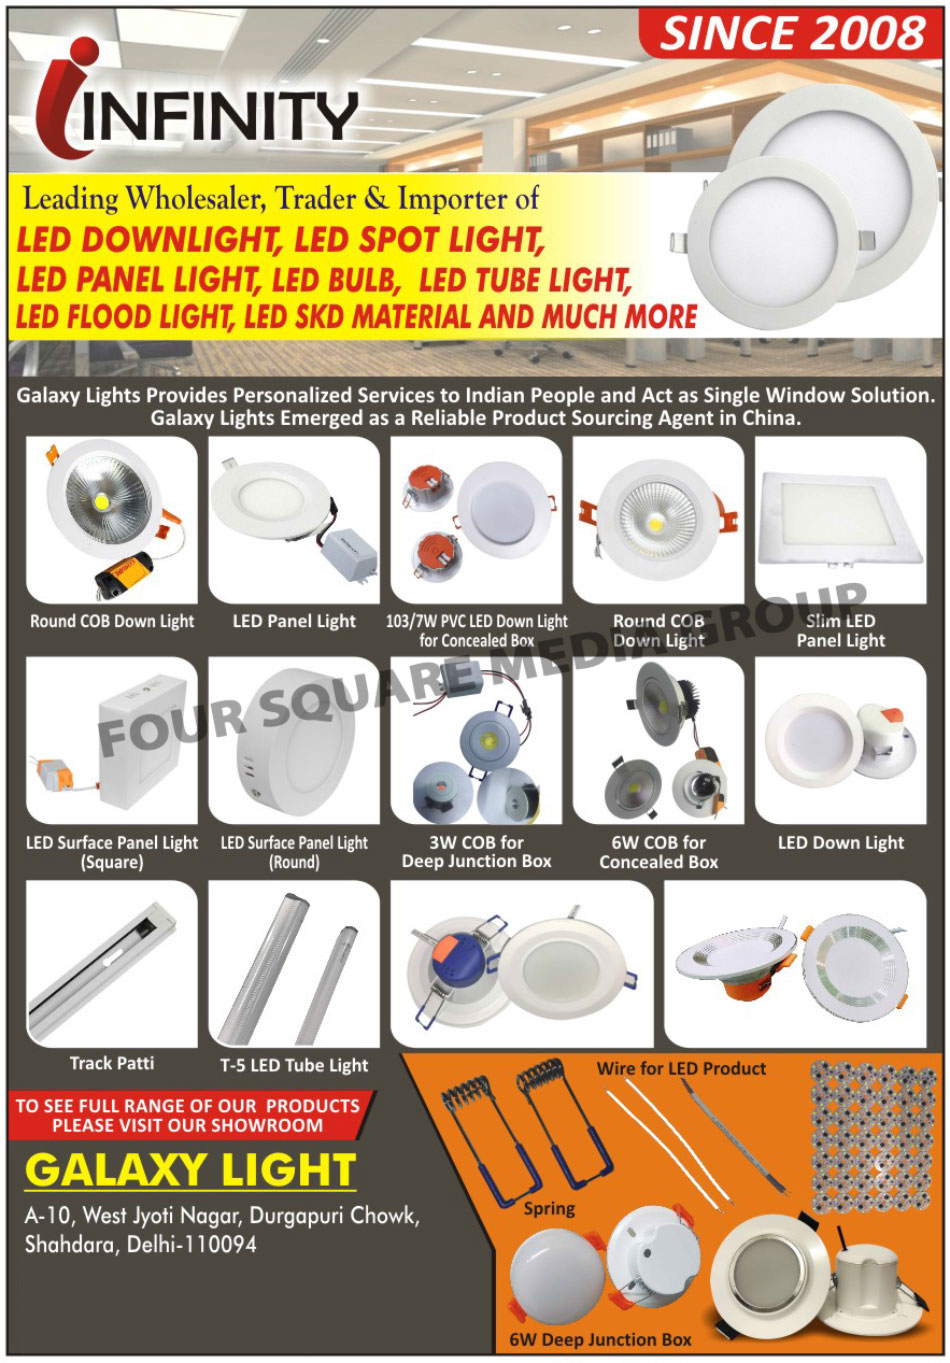 Led Lights, Led Down Lights, Led Spot Lights, Led Panel Lights, Led Bulbs, Led Tube Lights, Led SKD, Dimmable Led Spot Lights, Ceiling Recessed Down Lights, Round COB Down Lights, Slim Led Panel Lights, Square Led Surface Panel Lights, Round Led Surface Panel Lights, Led COB Wall Lights, Led Track Lights, Led Light Bulb, Fluorescent Batten Fitting, Led Flood Lights, Led SKD Material, PVC Led Down Lights, Deep Junction Box COB, Concealed Box COB, Track Patti, Led Product Wire, Led Springs, Deep Junction Boxes